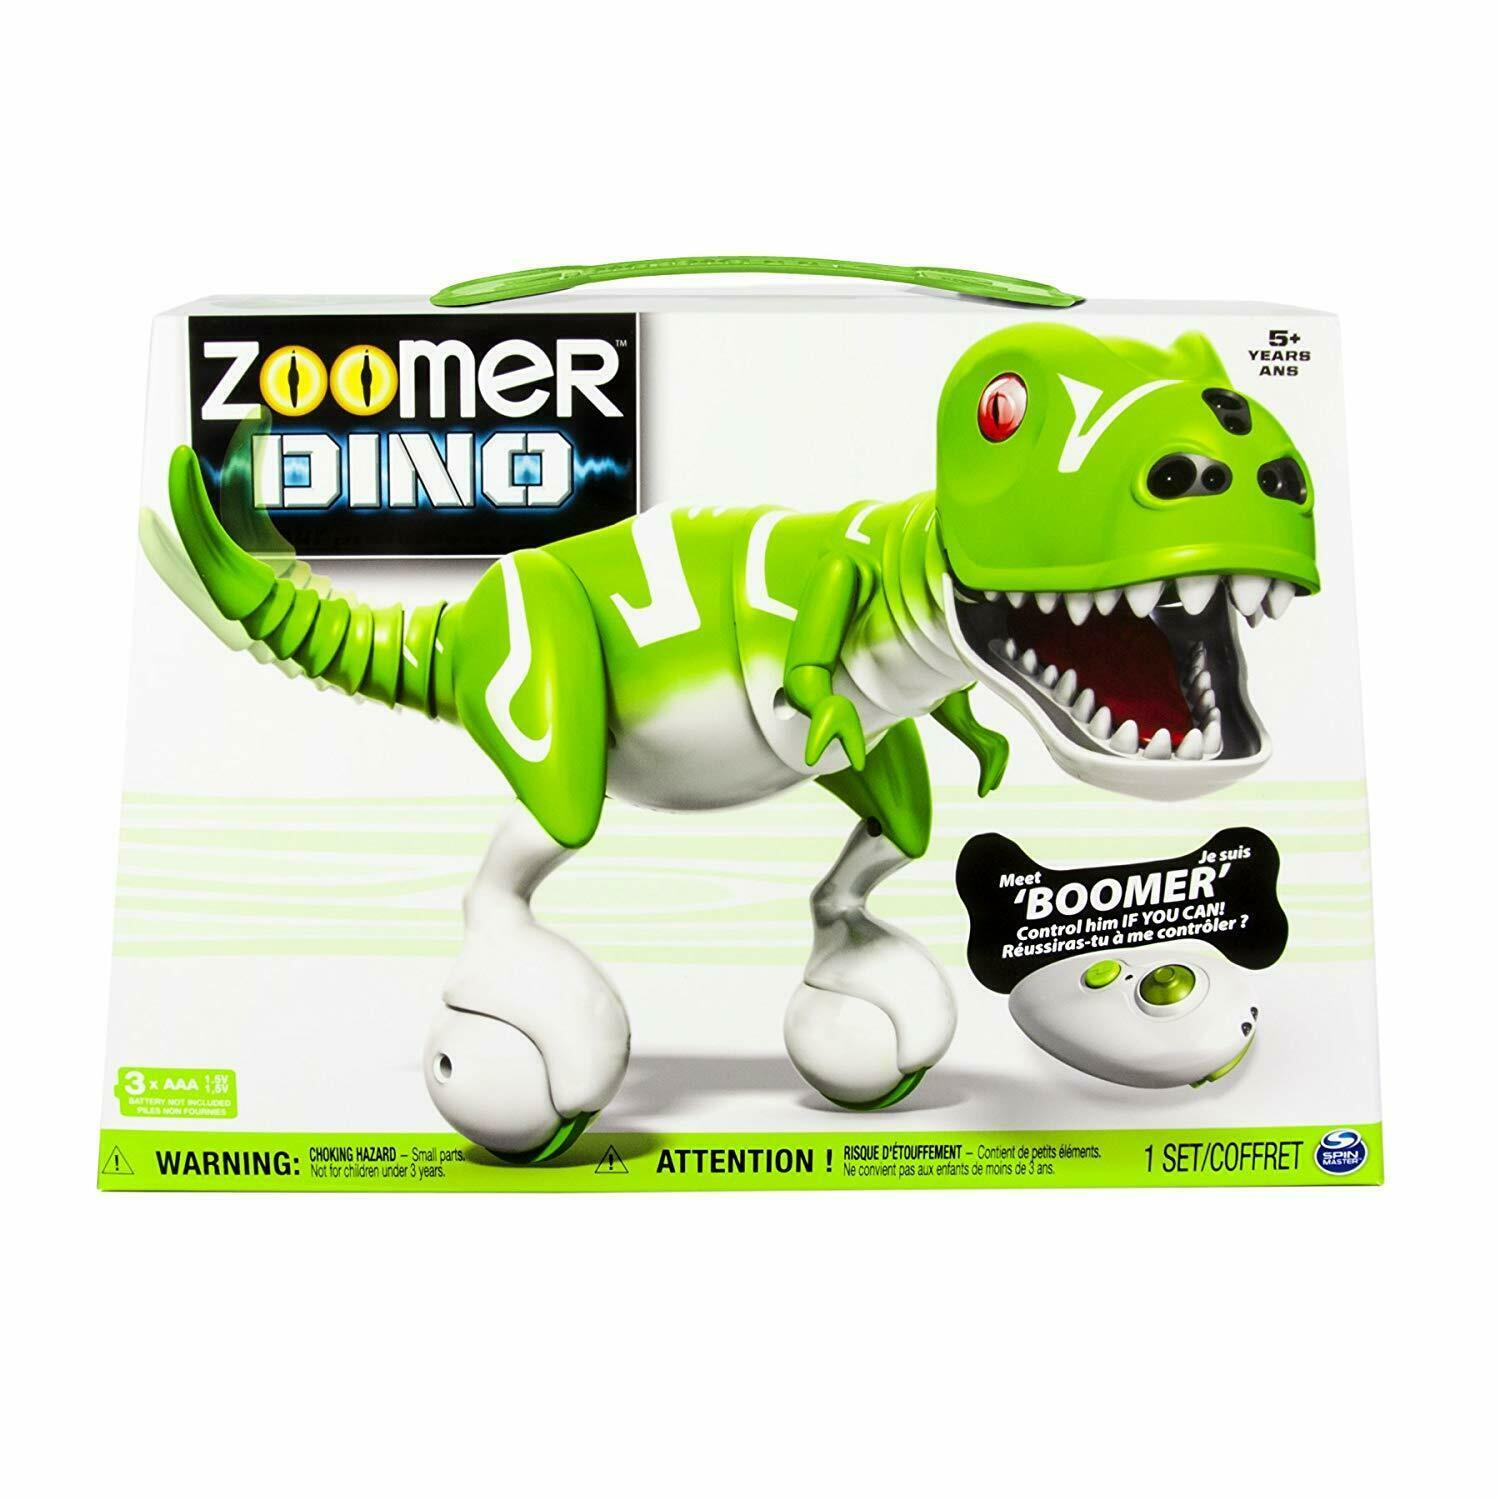 Spin Master ZOOMER DINO BOOMER Green Interactive - Includes Remote & USB Cable